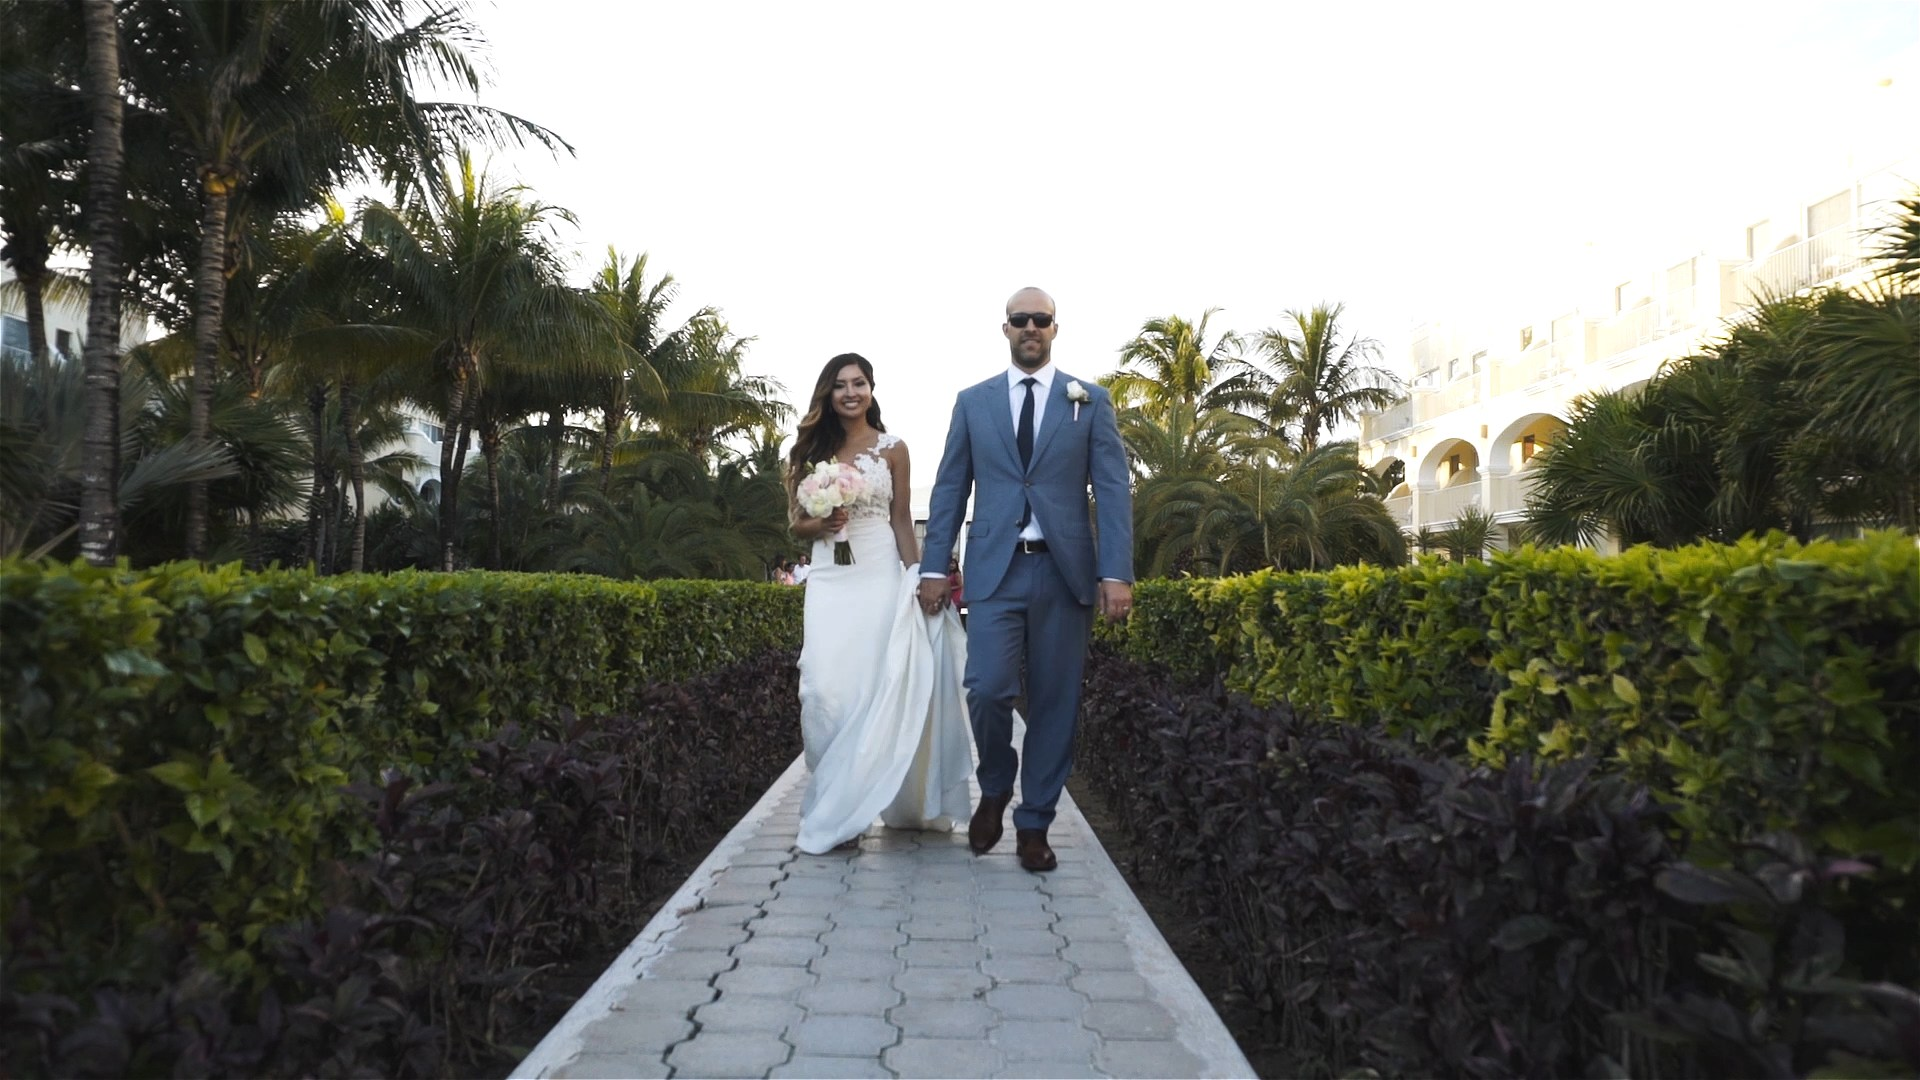 Romina + Brendan Get Married at Dreams Tulum Resort & Spa - Wedding Film Photographer: Jaime Glez